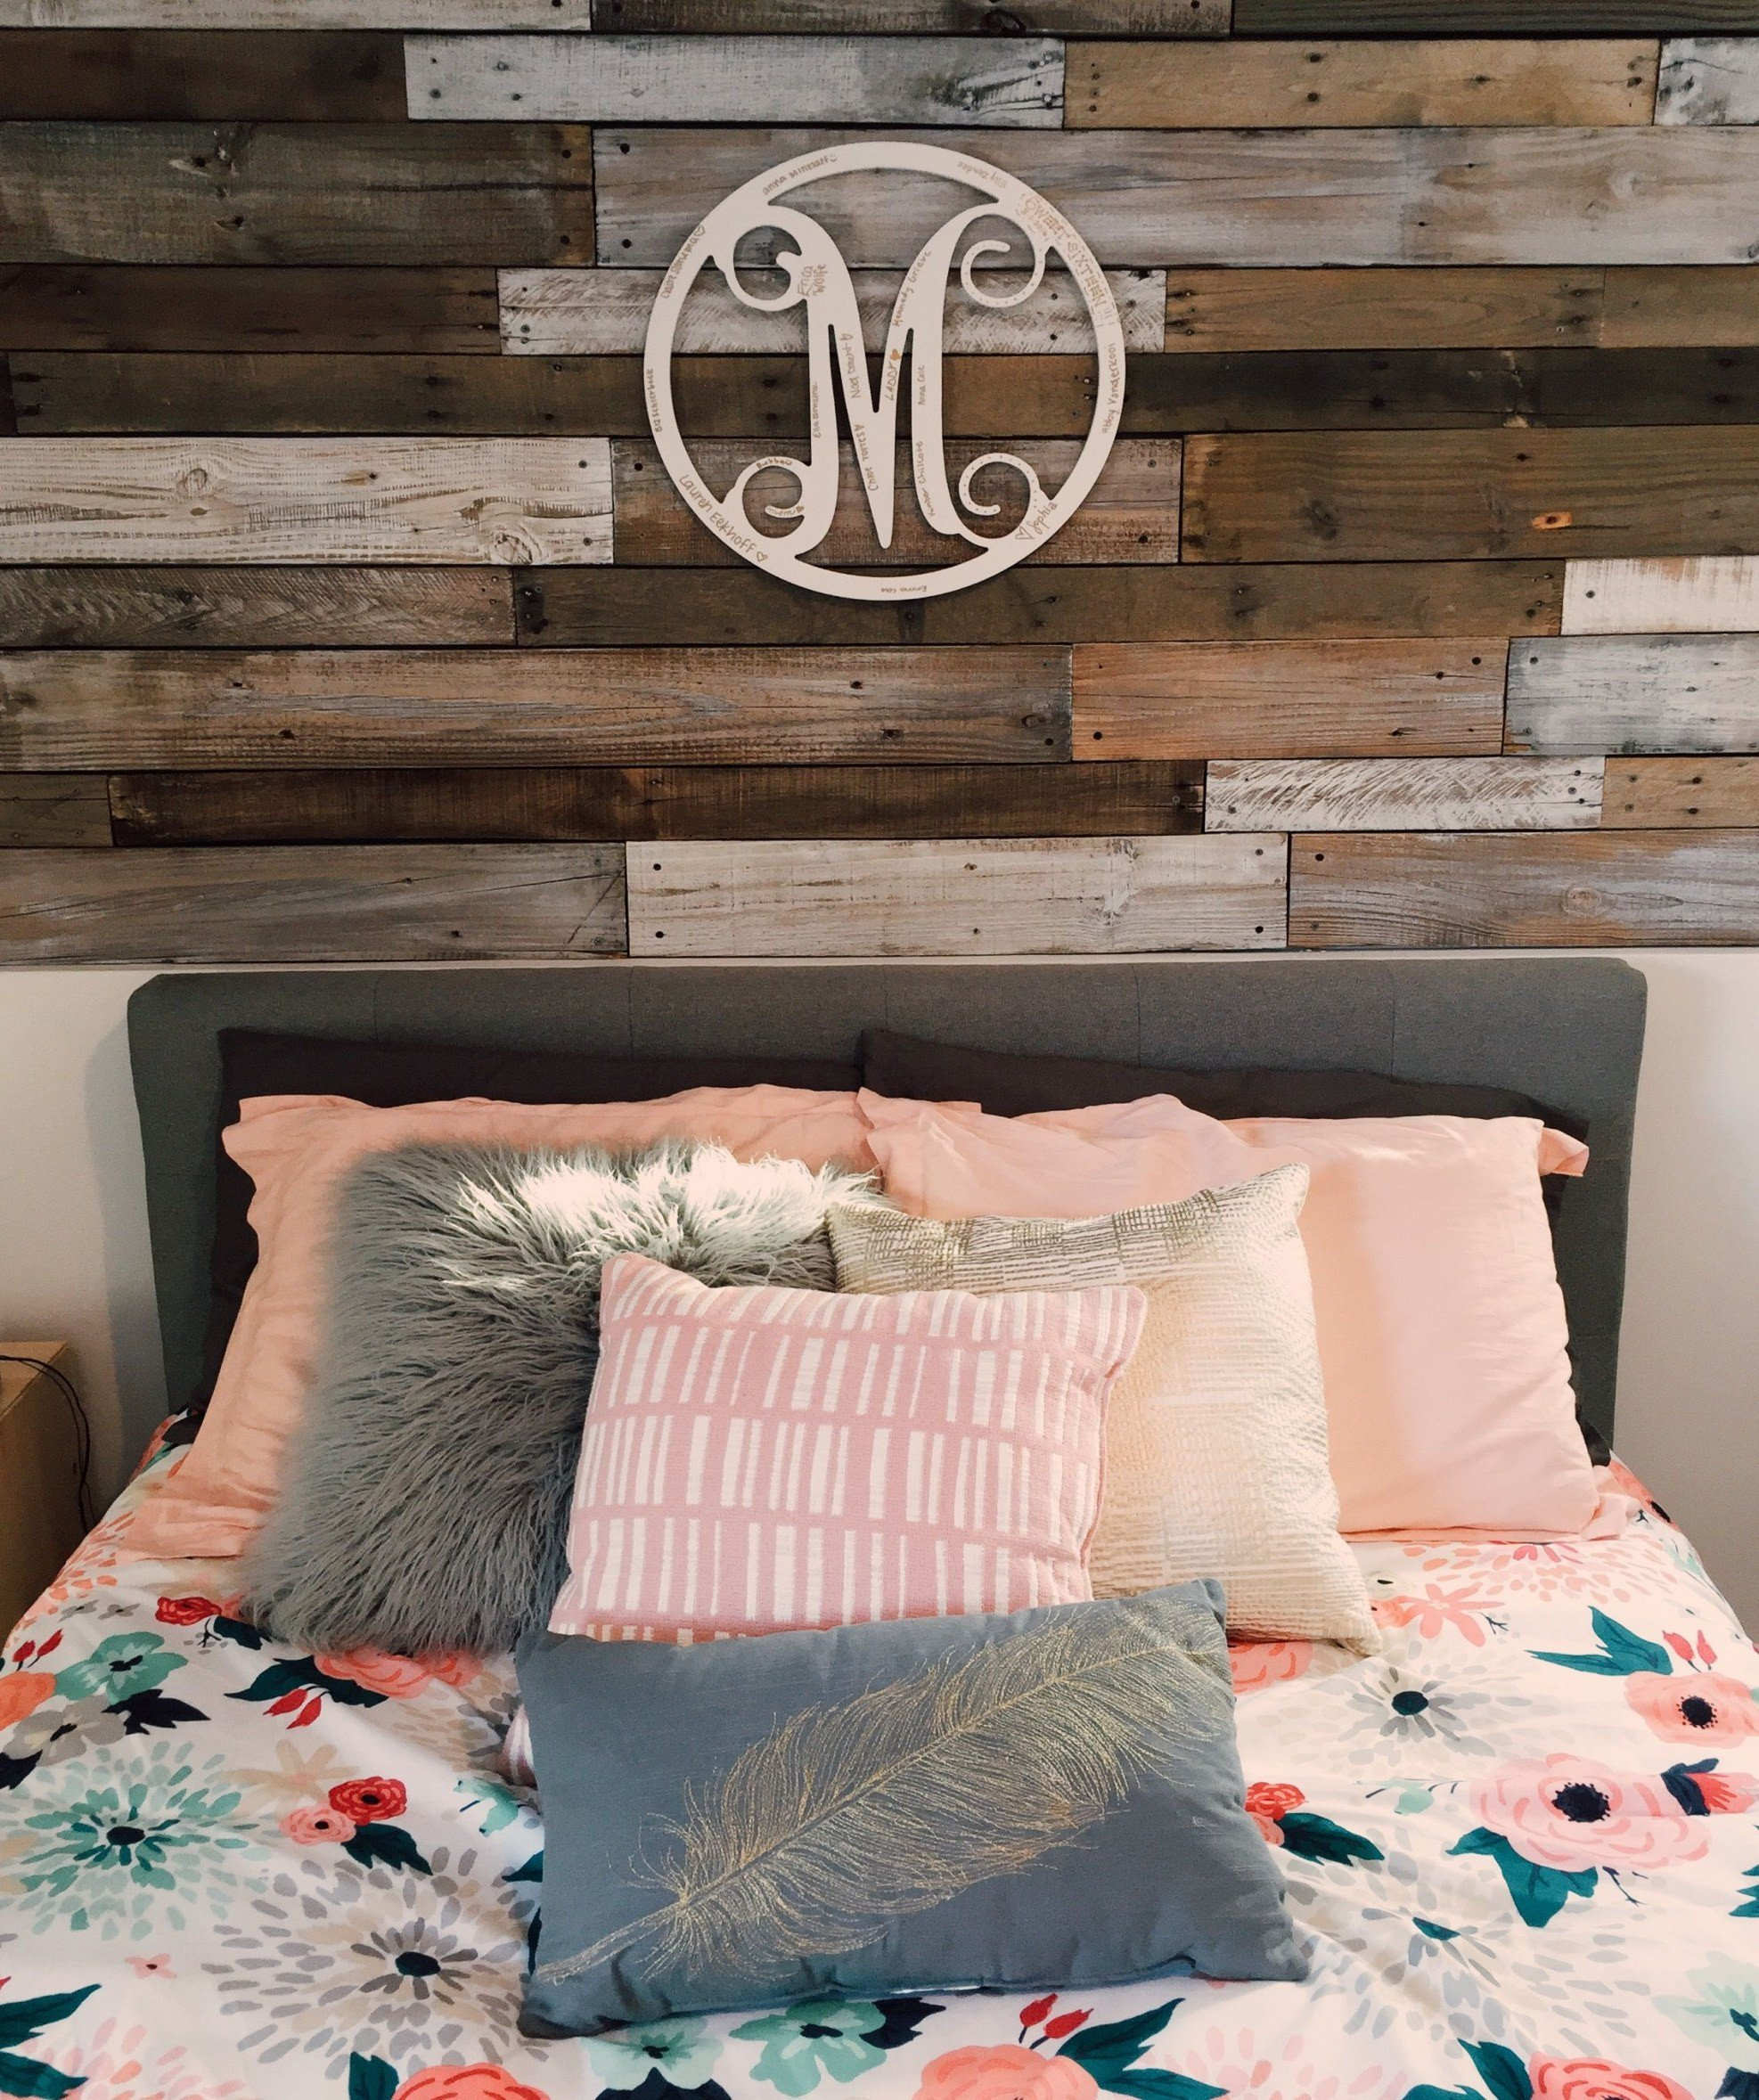 Bedroom before and after Beautiful Chic Bedroom Ideas Bedroom Cool Gray Bedroom Decor Elegant